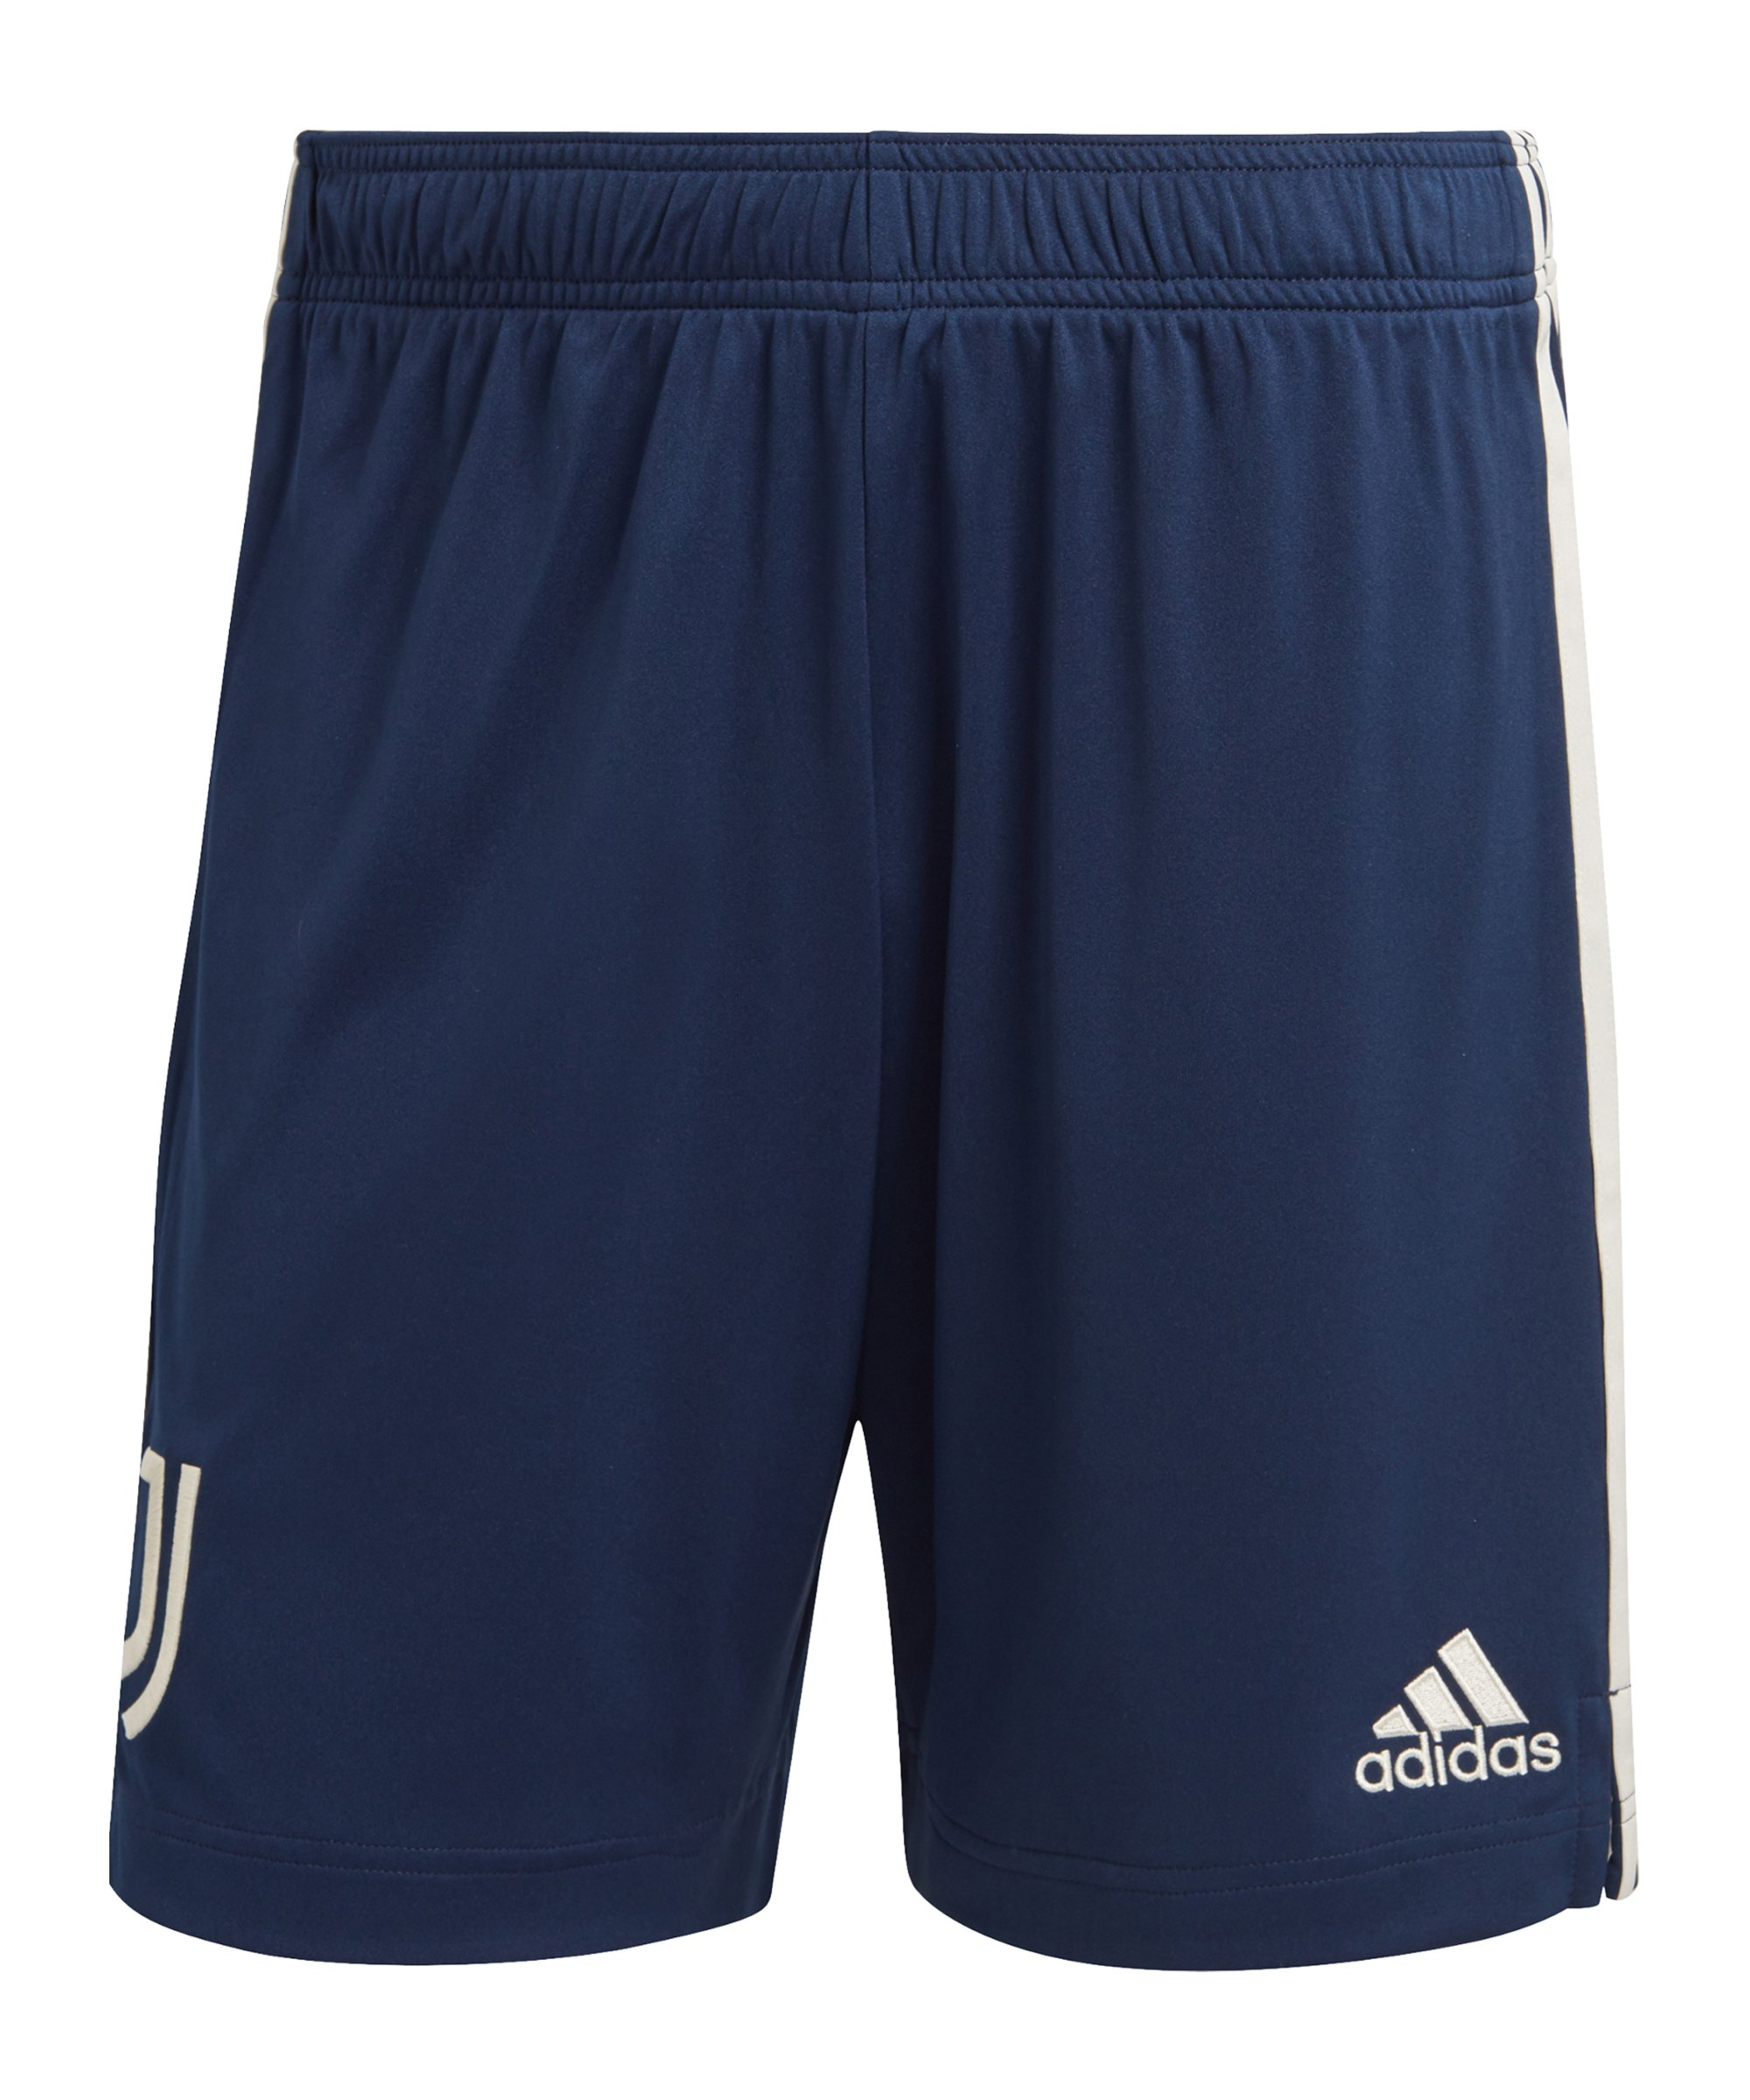 adidas Juventus Turin Short Away 2020/2021 Kids - blau